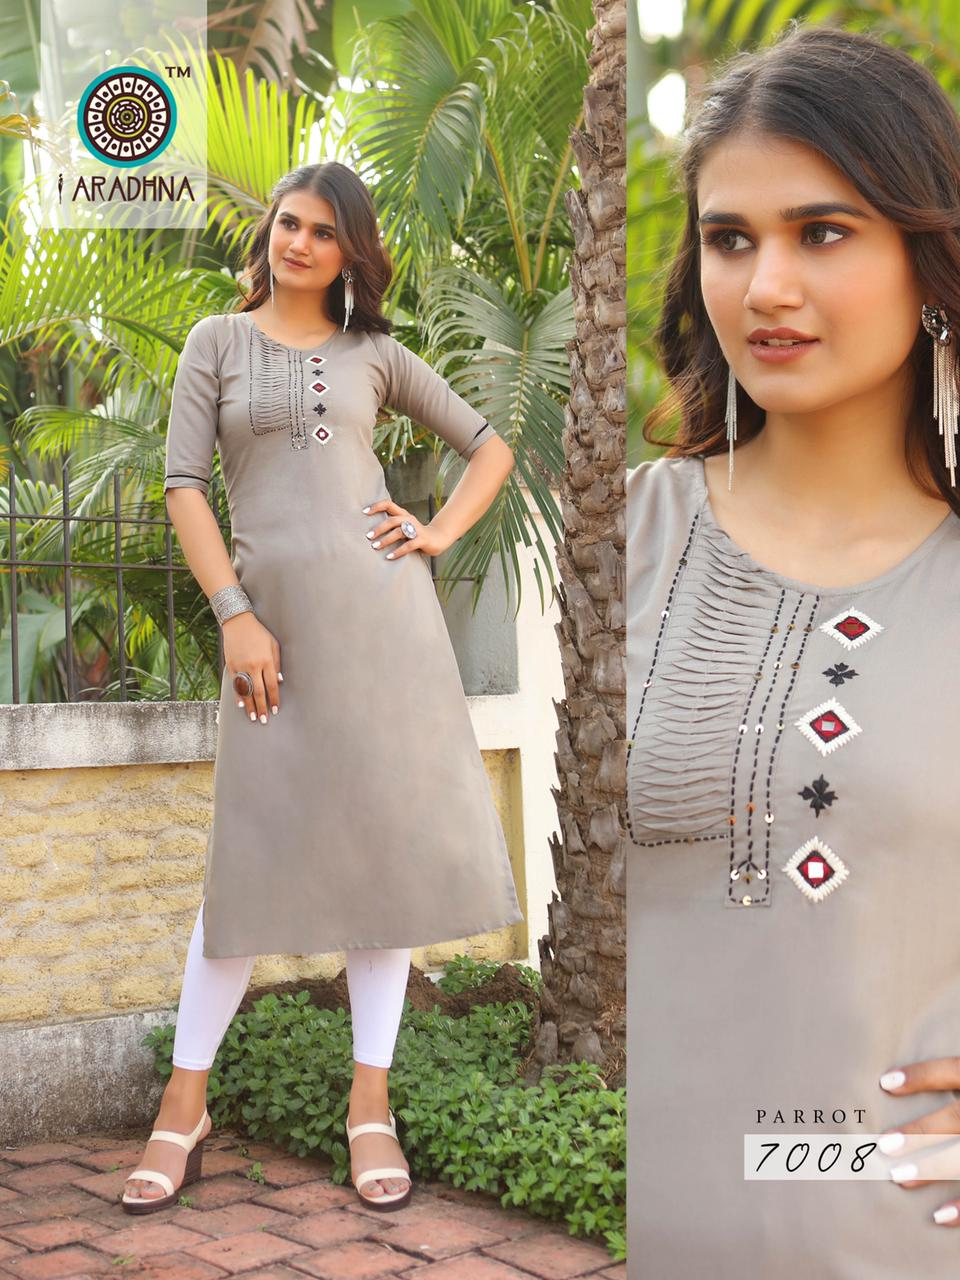 Aradhna Parrot Vol 7 Kurti Wholesale Catalog 11 Pcs 8 - Aradhna Parrot Vol 7 Kurti Wholesale Catalog 11 Pcs